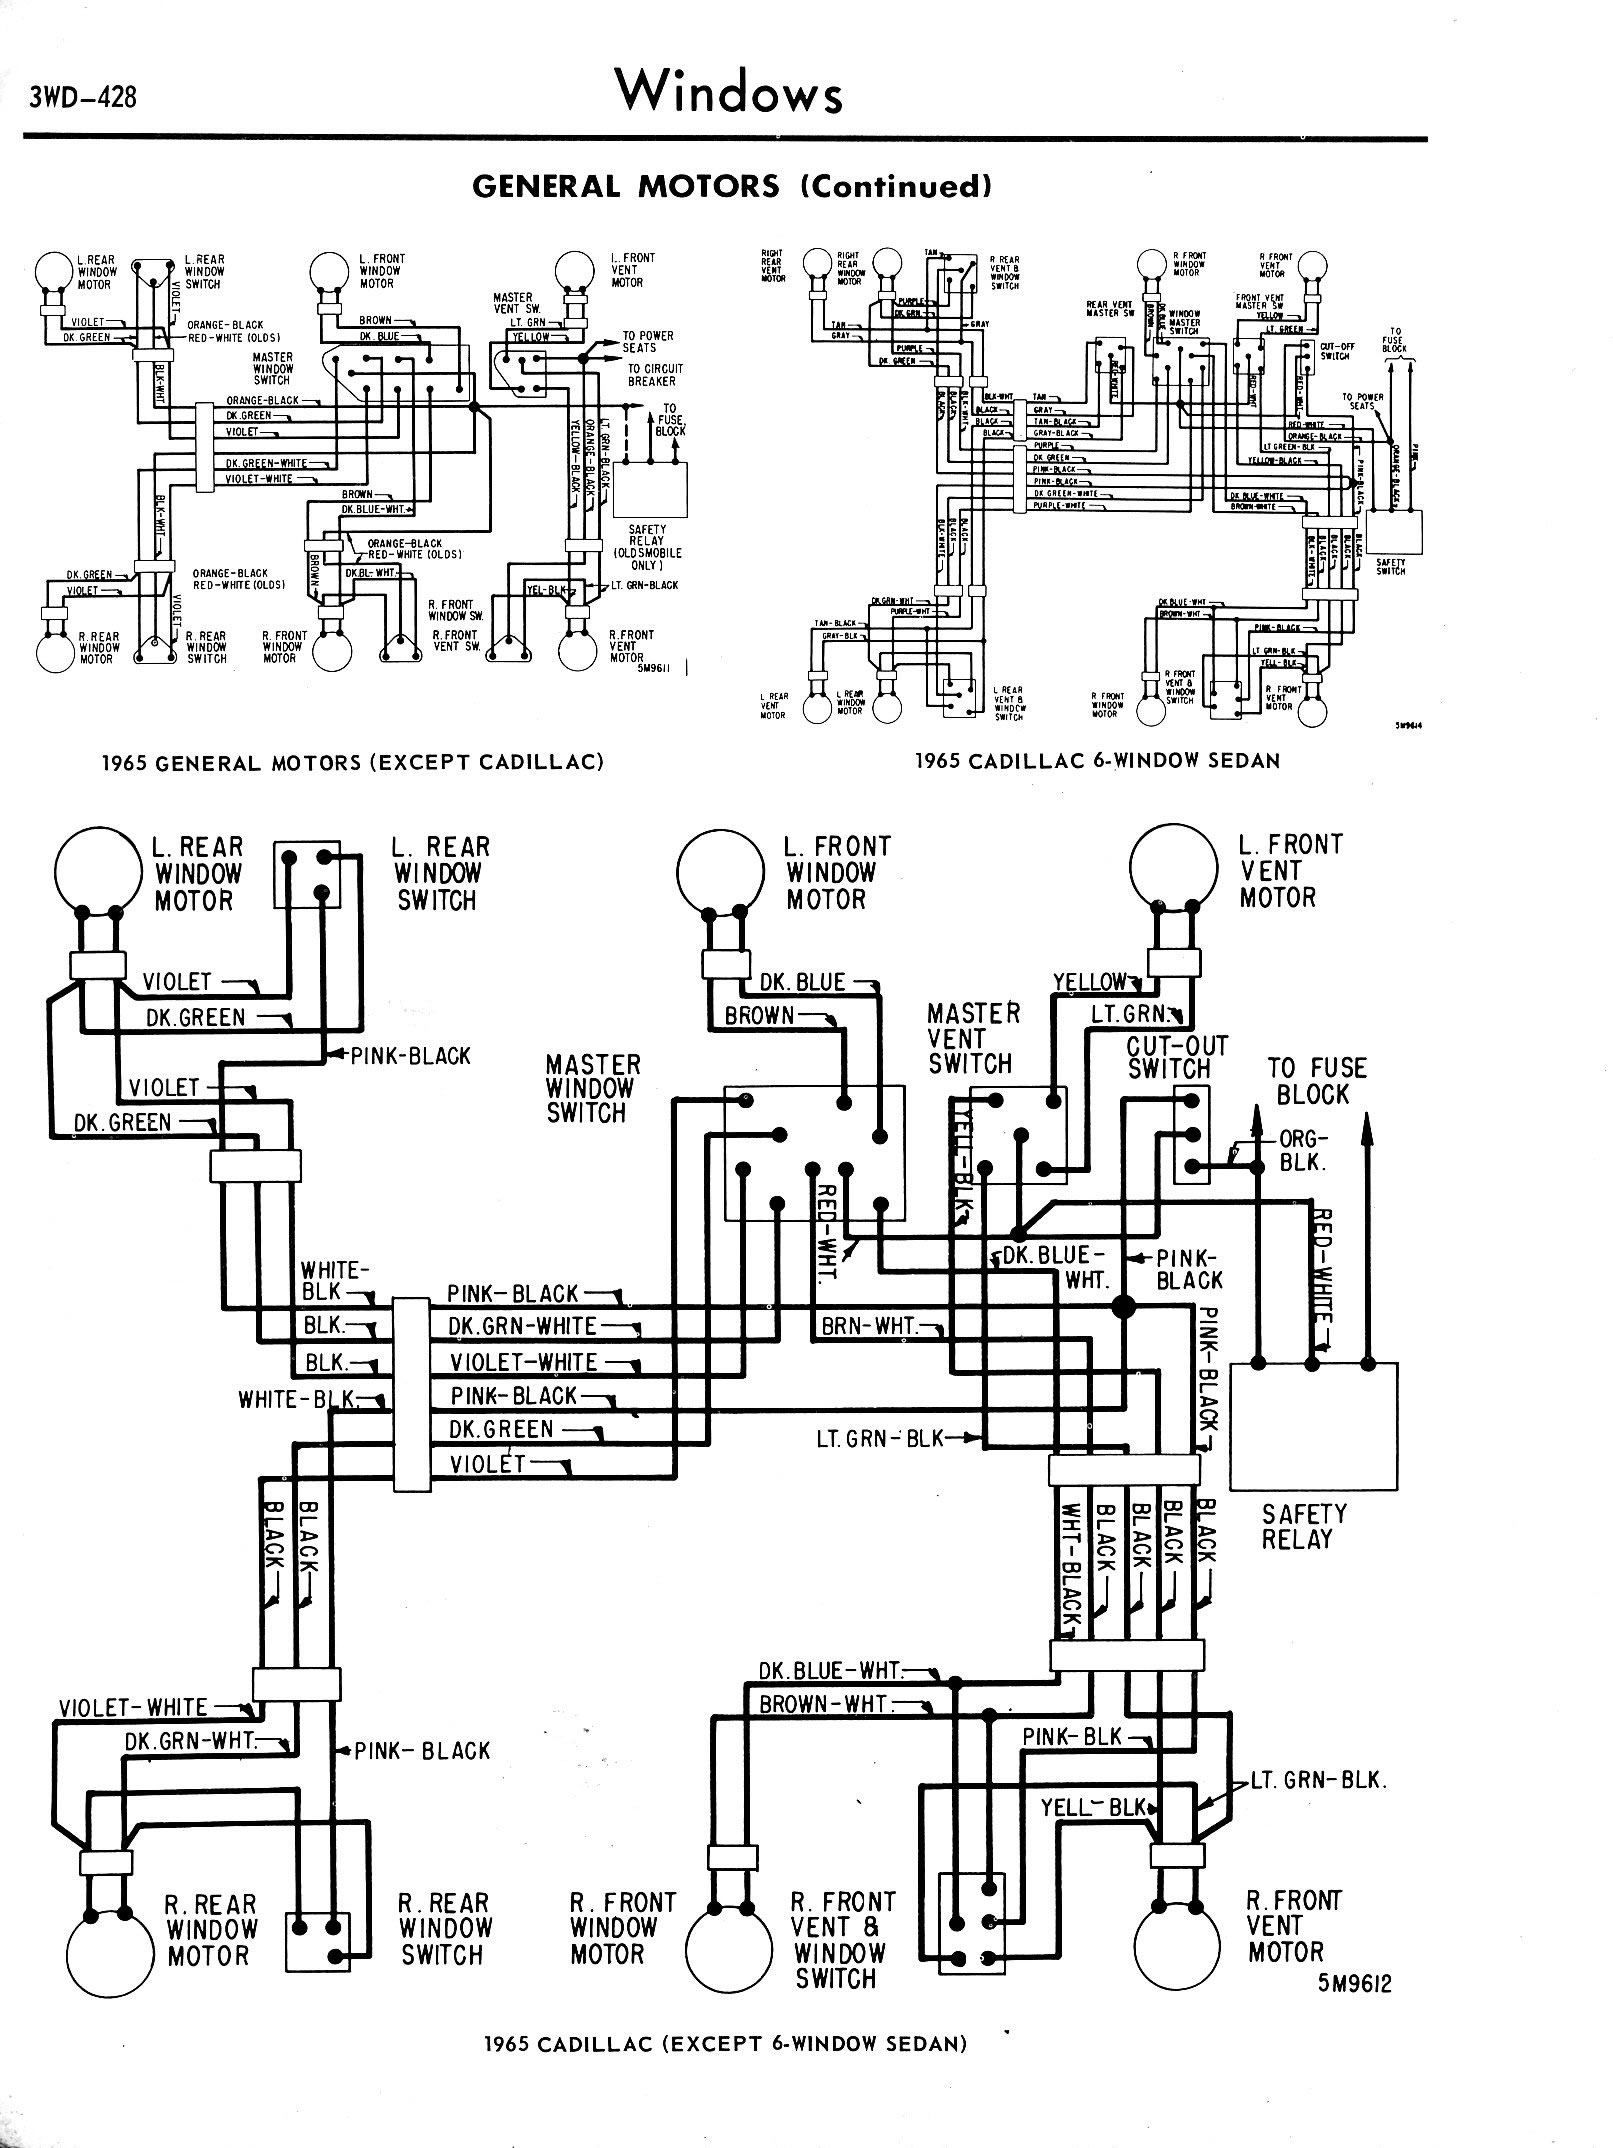 3WD 428_jpg chevy diagrams 1965 Mustang Wiring Diagram at eliteediting.co